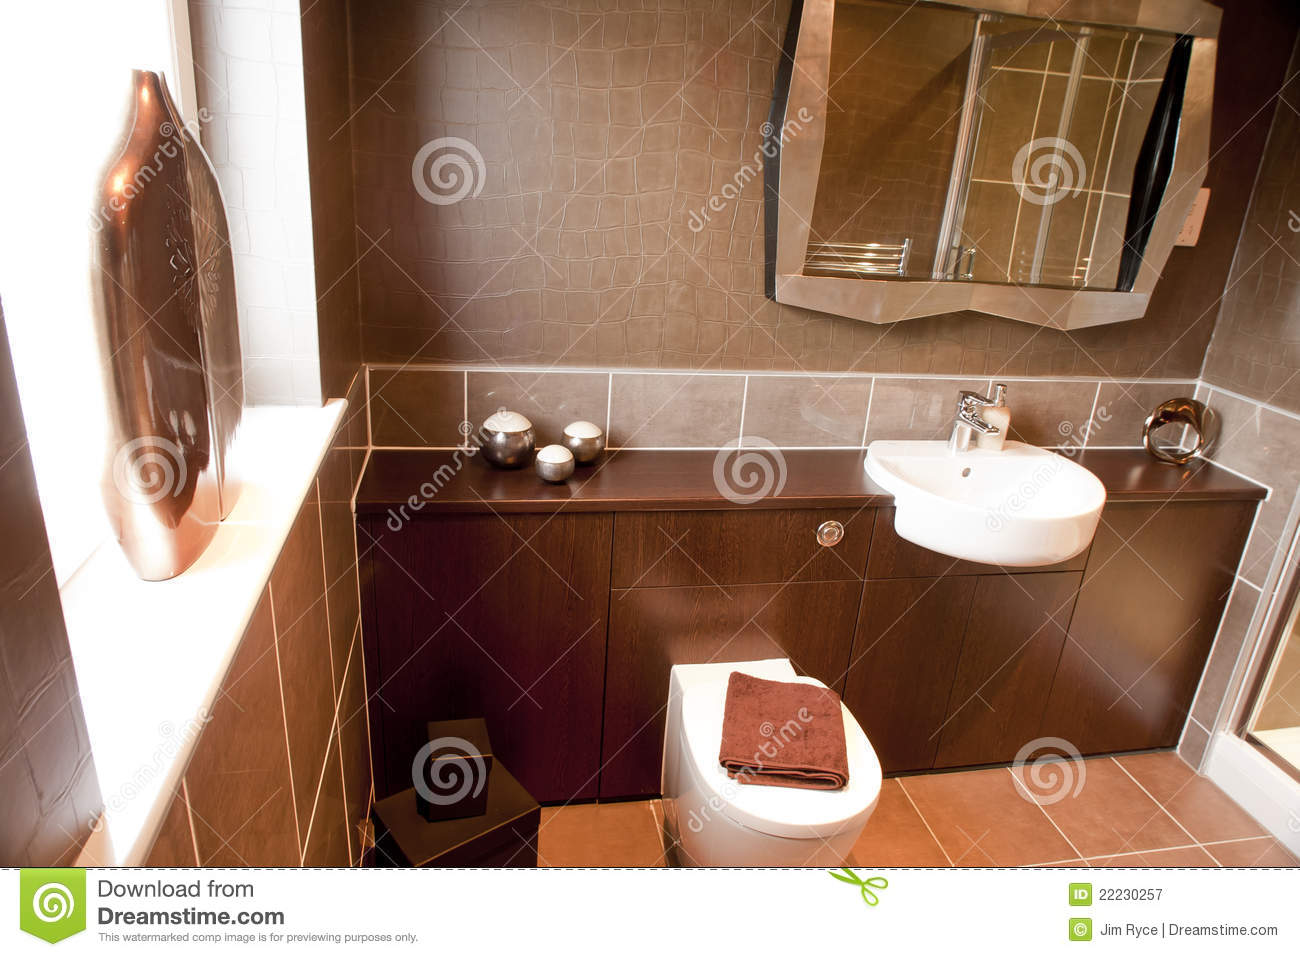 Modern Bathroom Interior Royalty Free Stock Photography Image 22230257